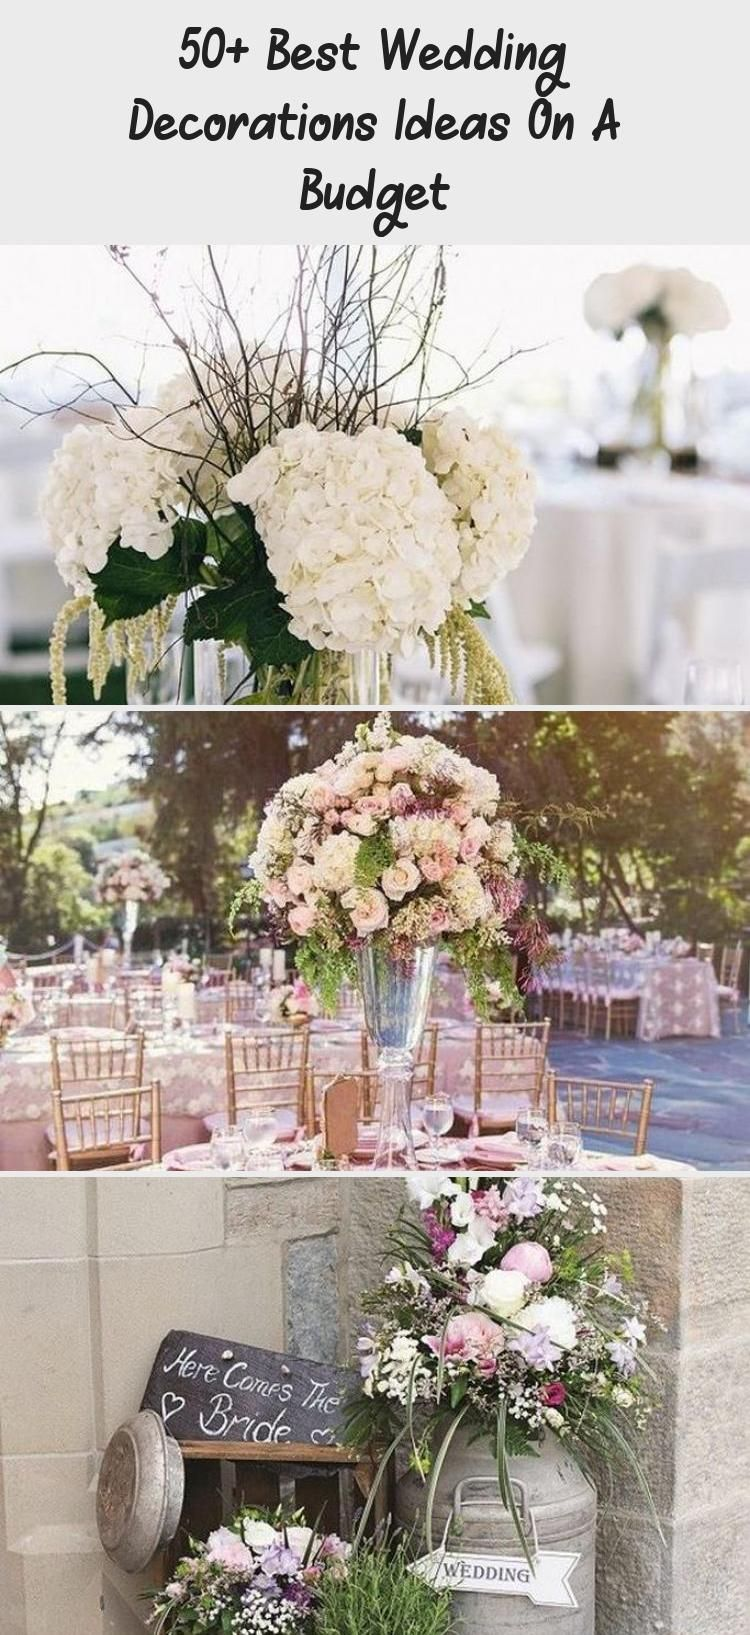 50+ Best Wedding Decorations Ideas on A Budget_20